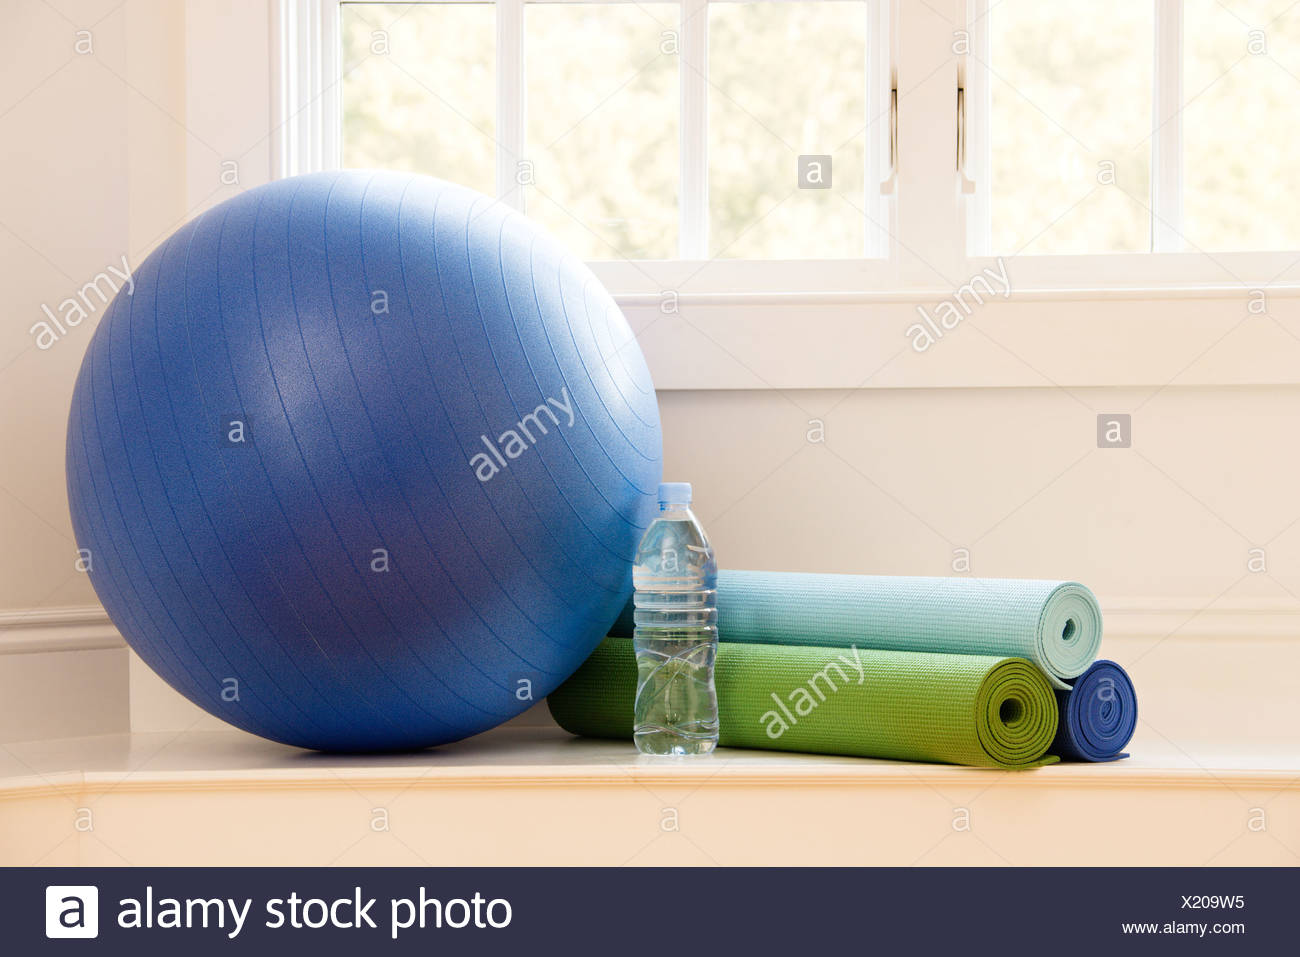 Balance ball exercise mats and bottled water at gym by window - Stock Image